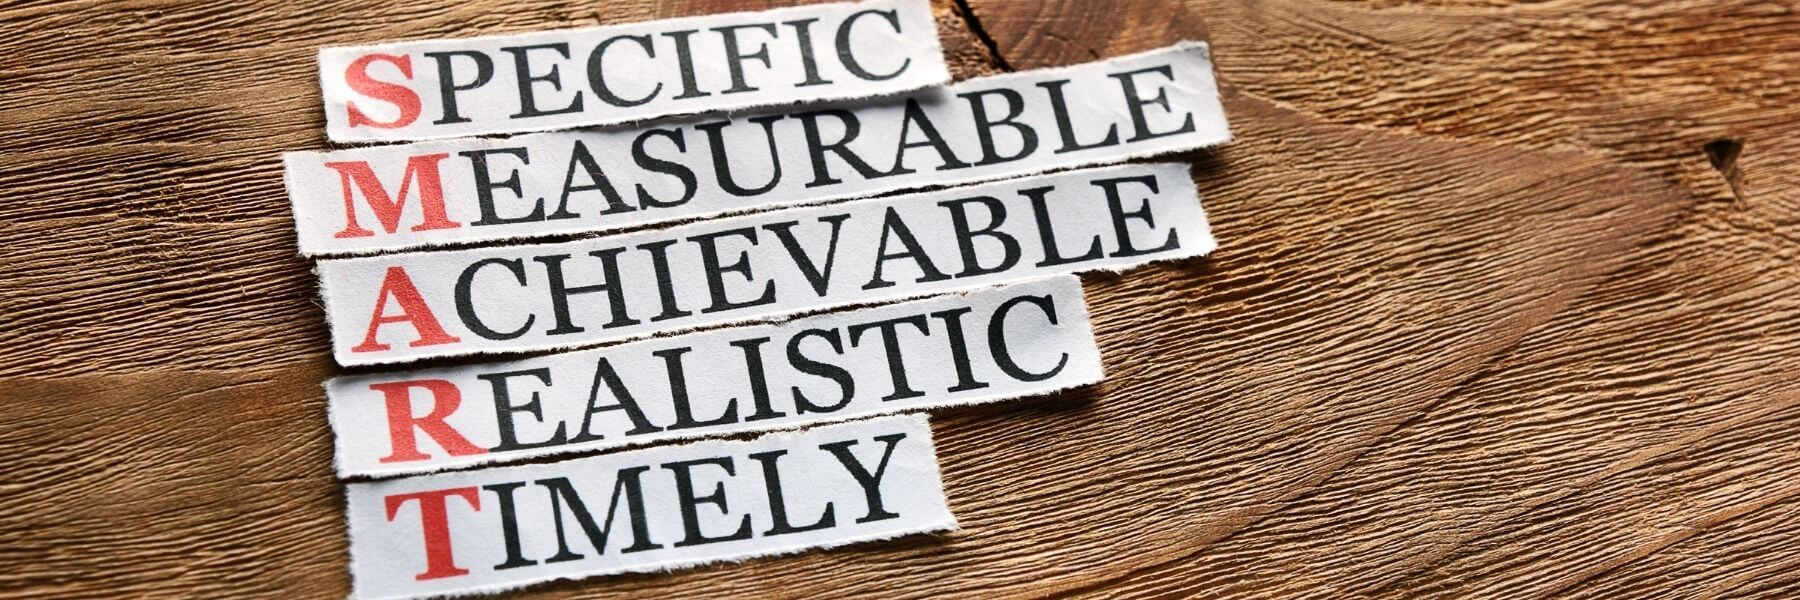 SMART: Specific, Measurable, Achievable, Realistic, Timely